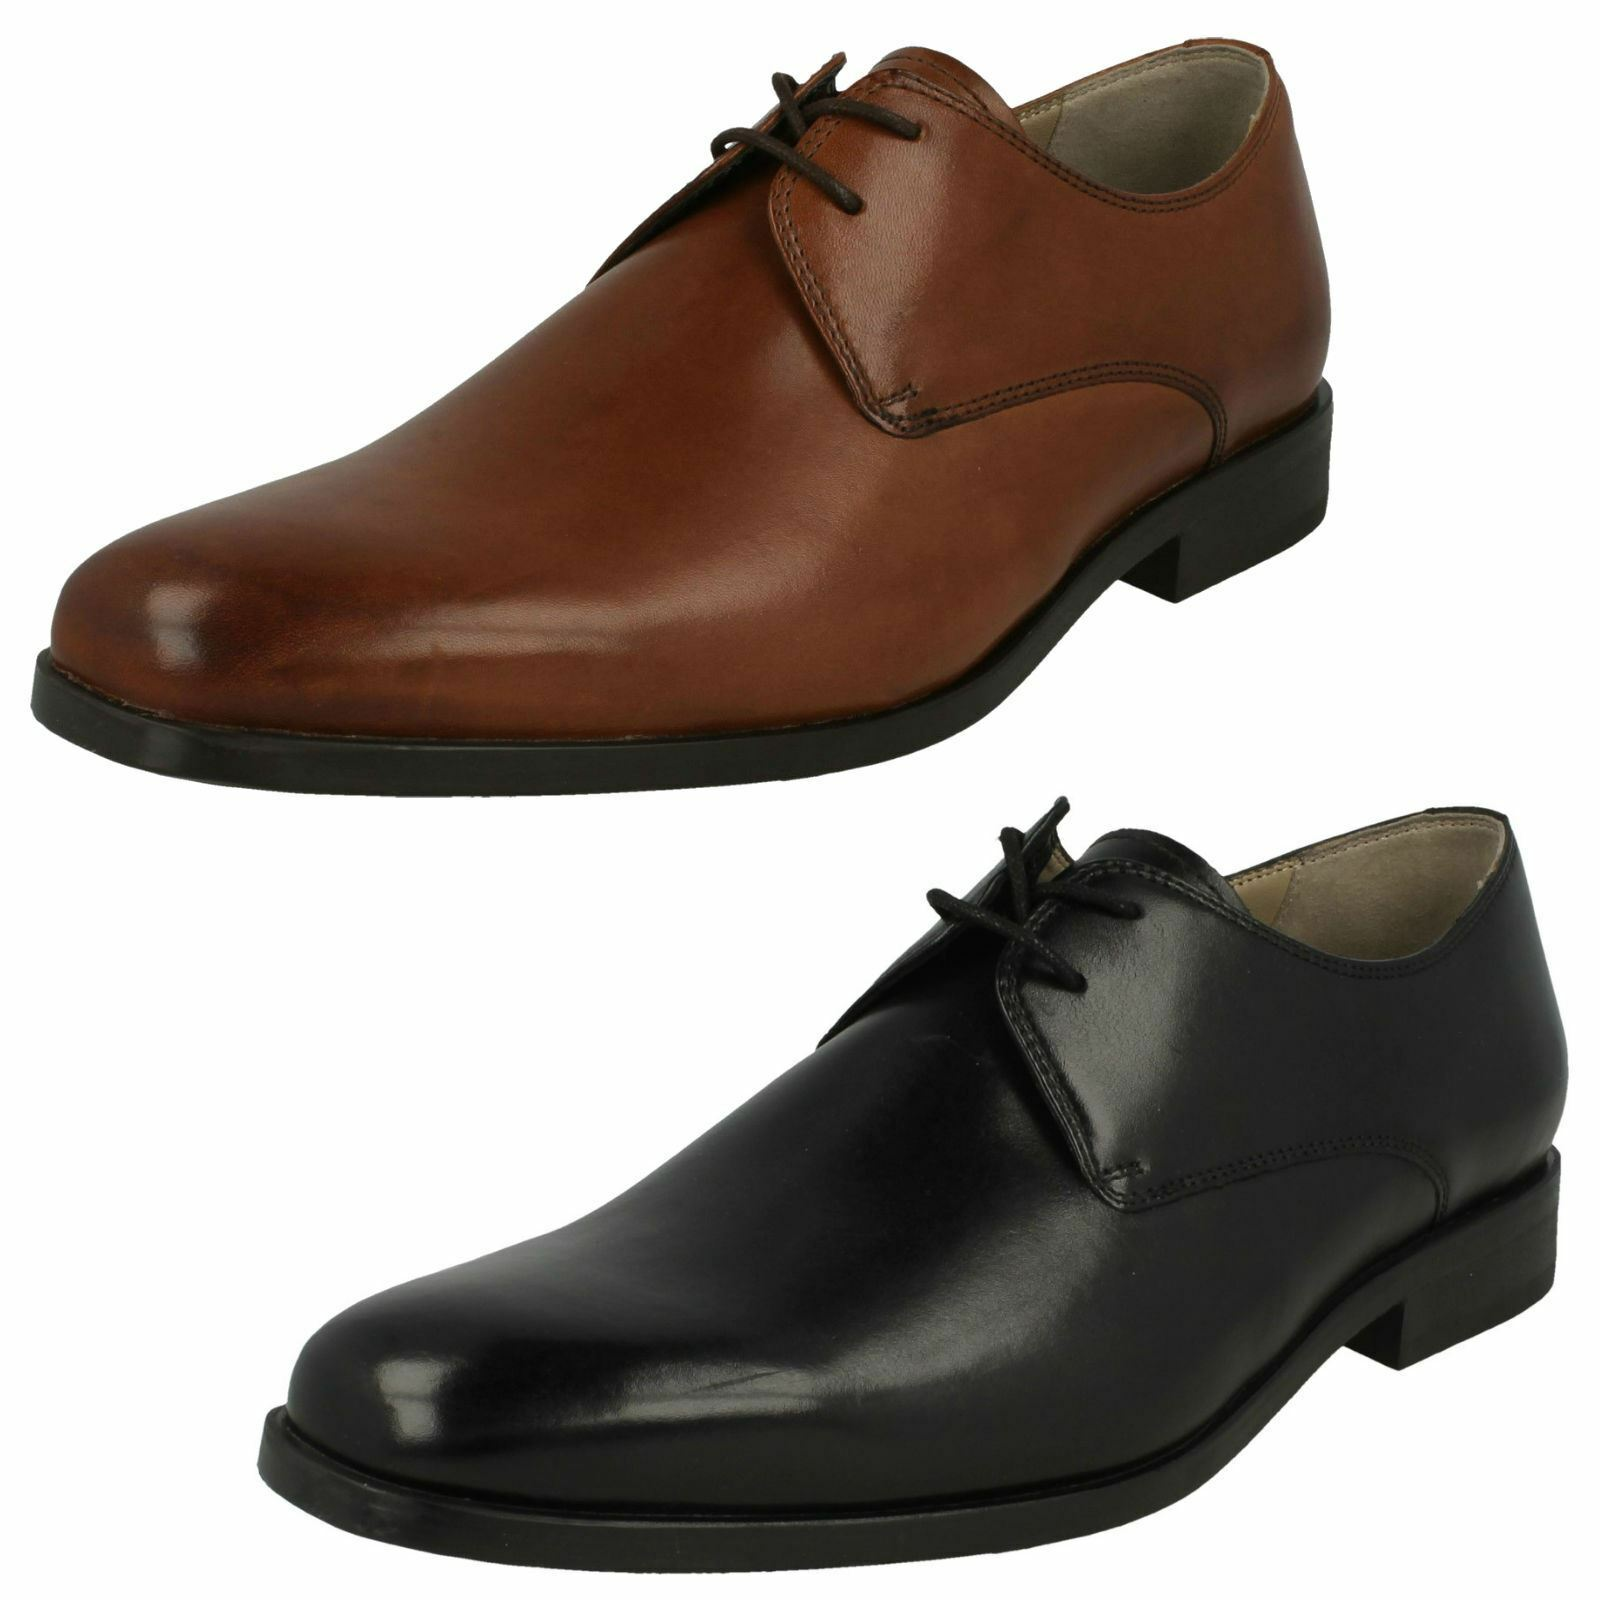 Mens Clarks Formal Lace Up Shoes - Bmieson Walk